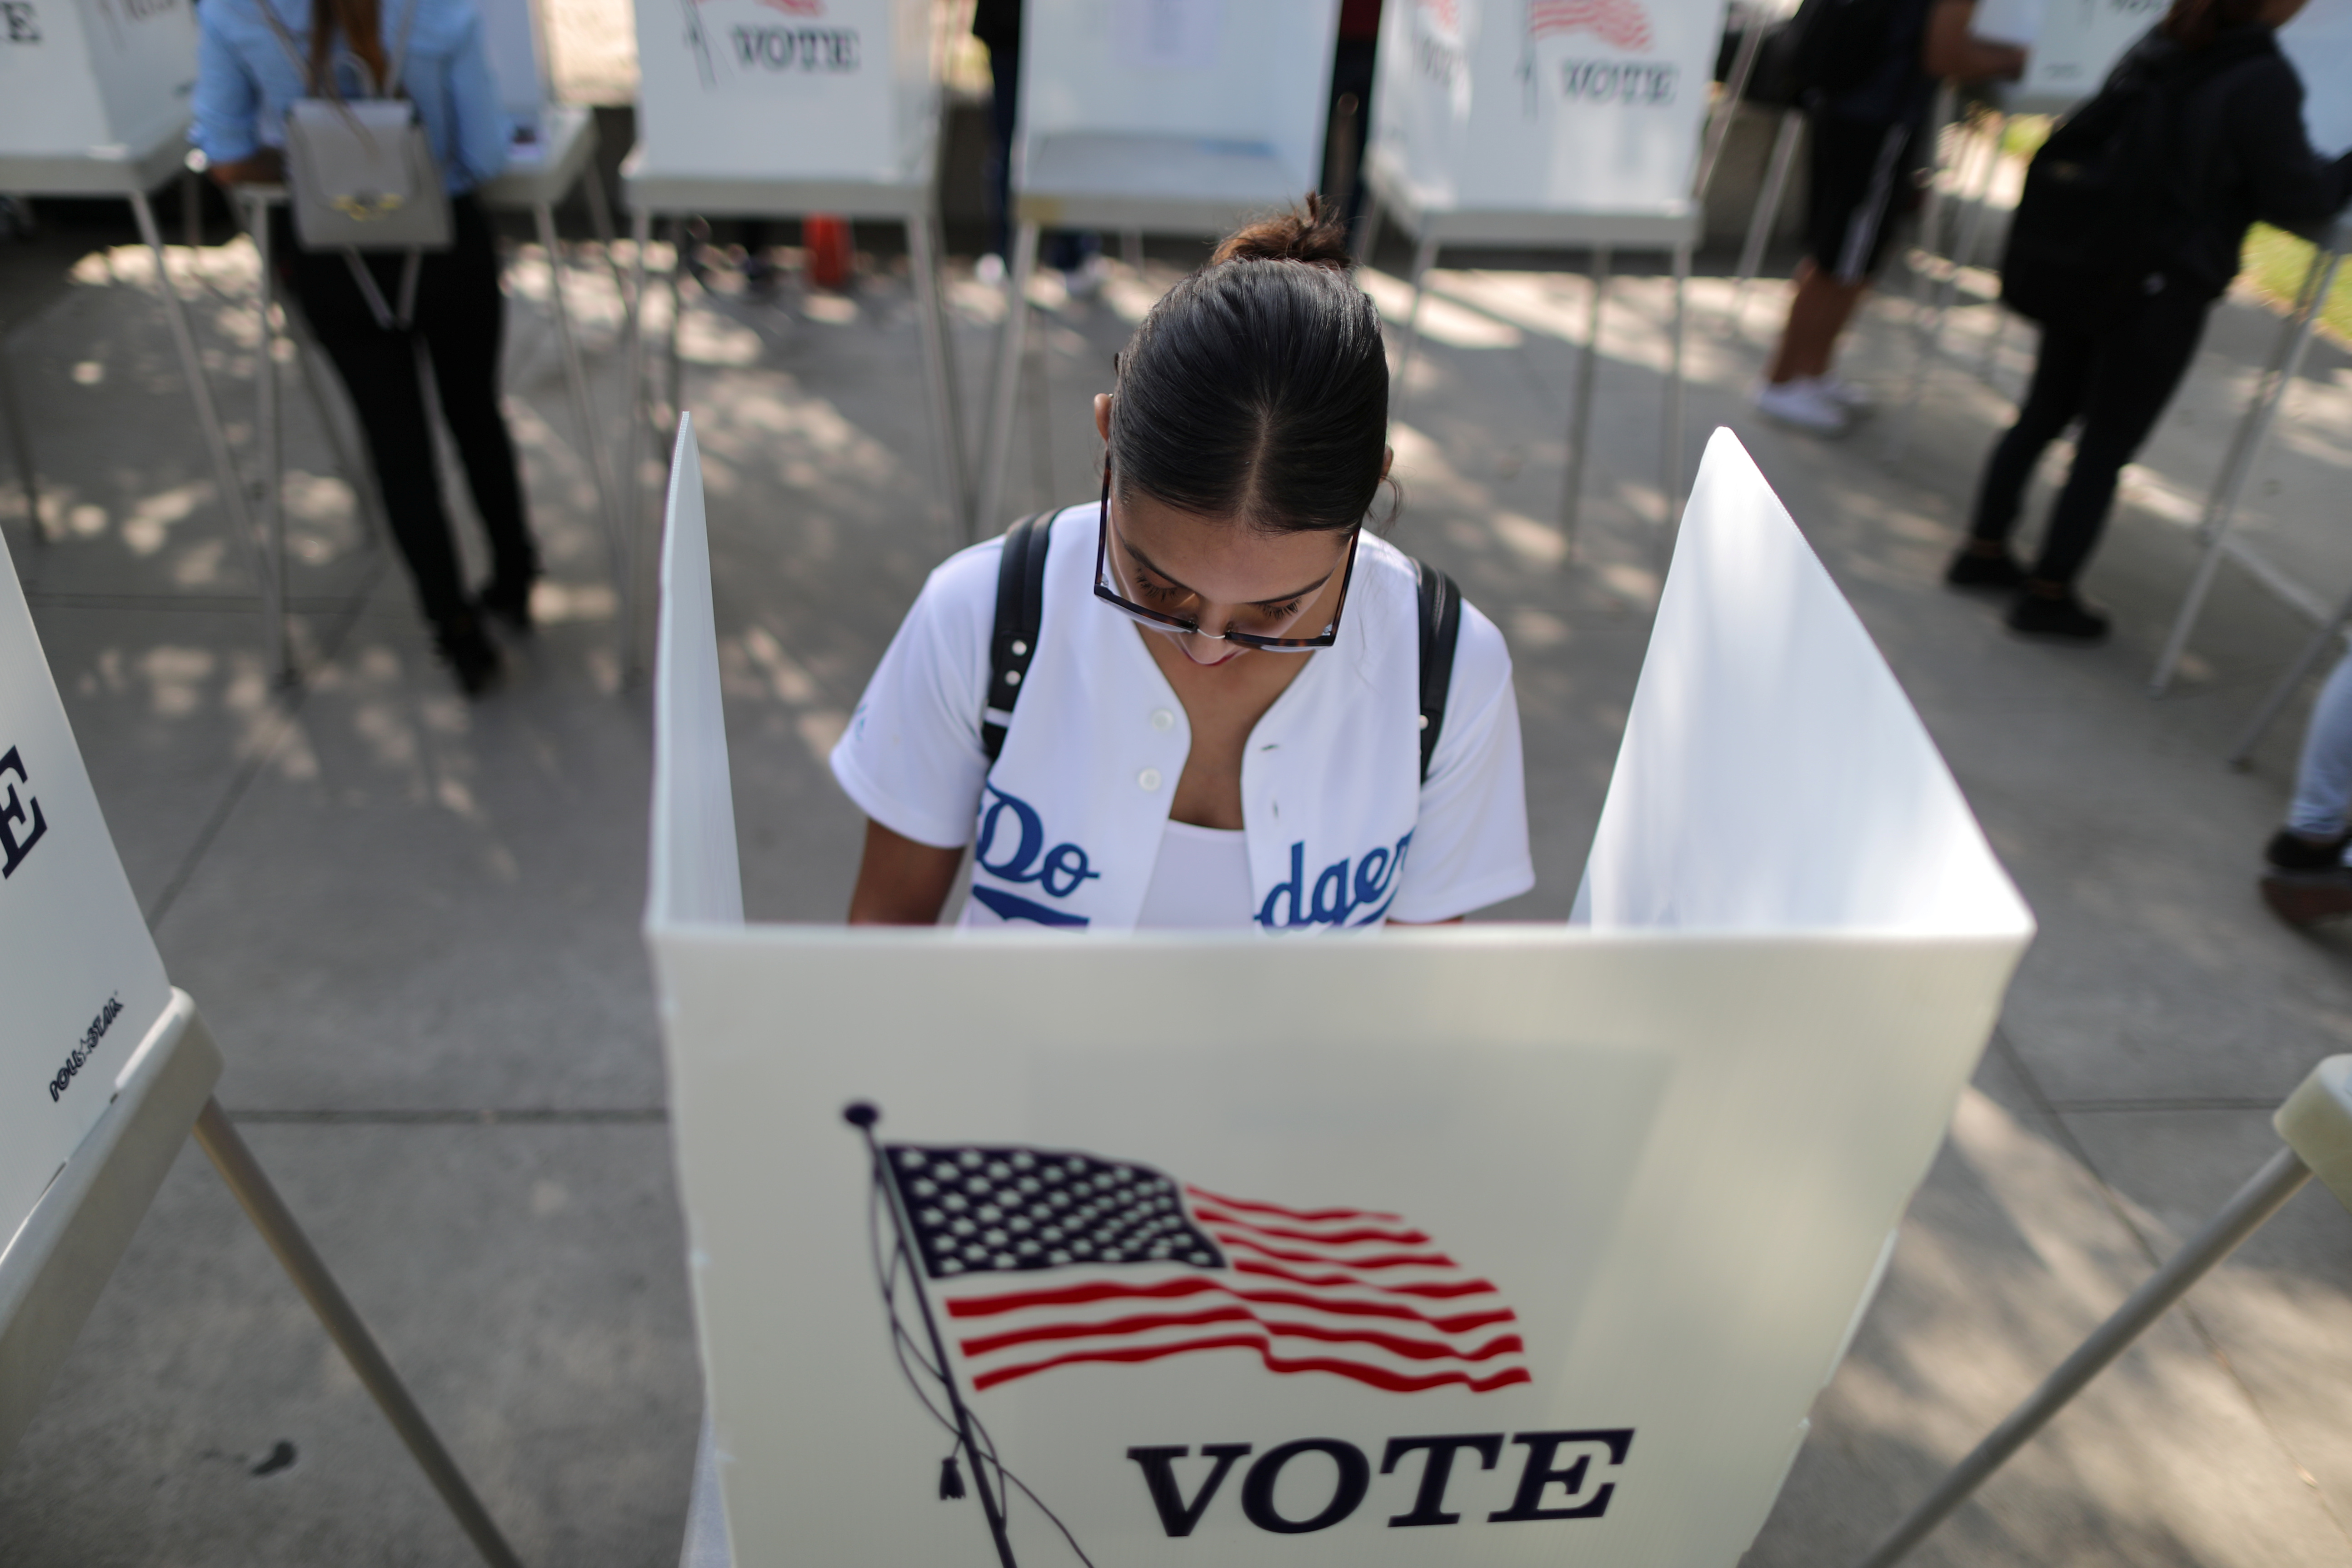 Cynthia Lazo, 25, votes in the U.S. congressional and gubernatorial midterm elections in Norwalk